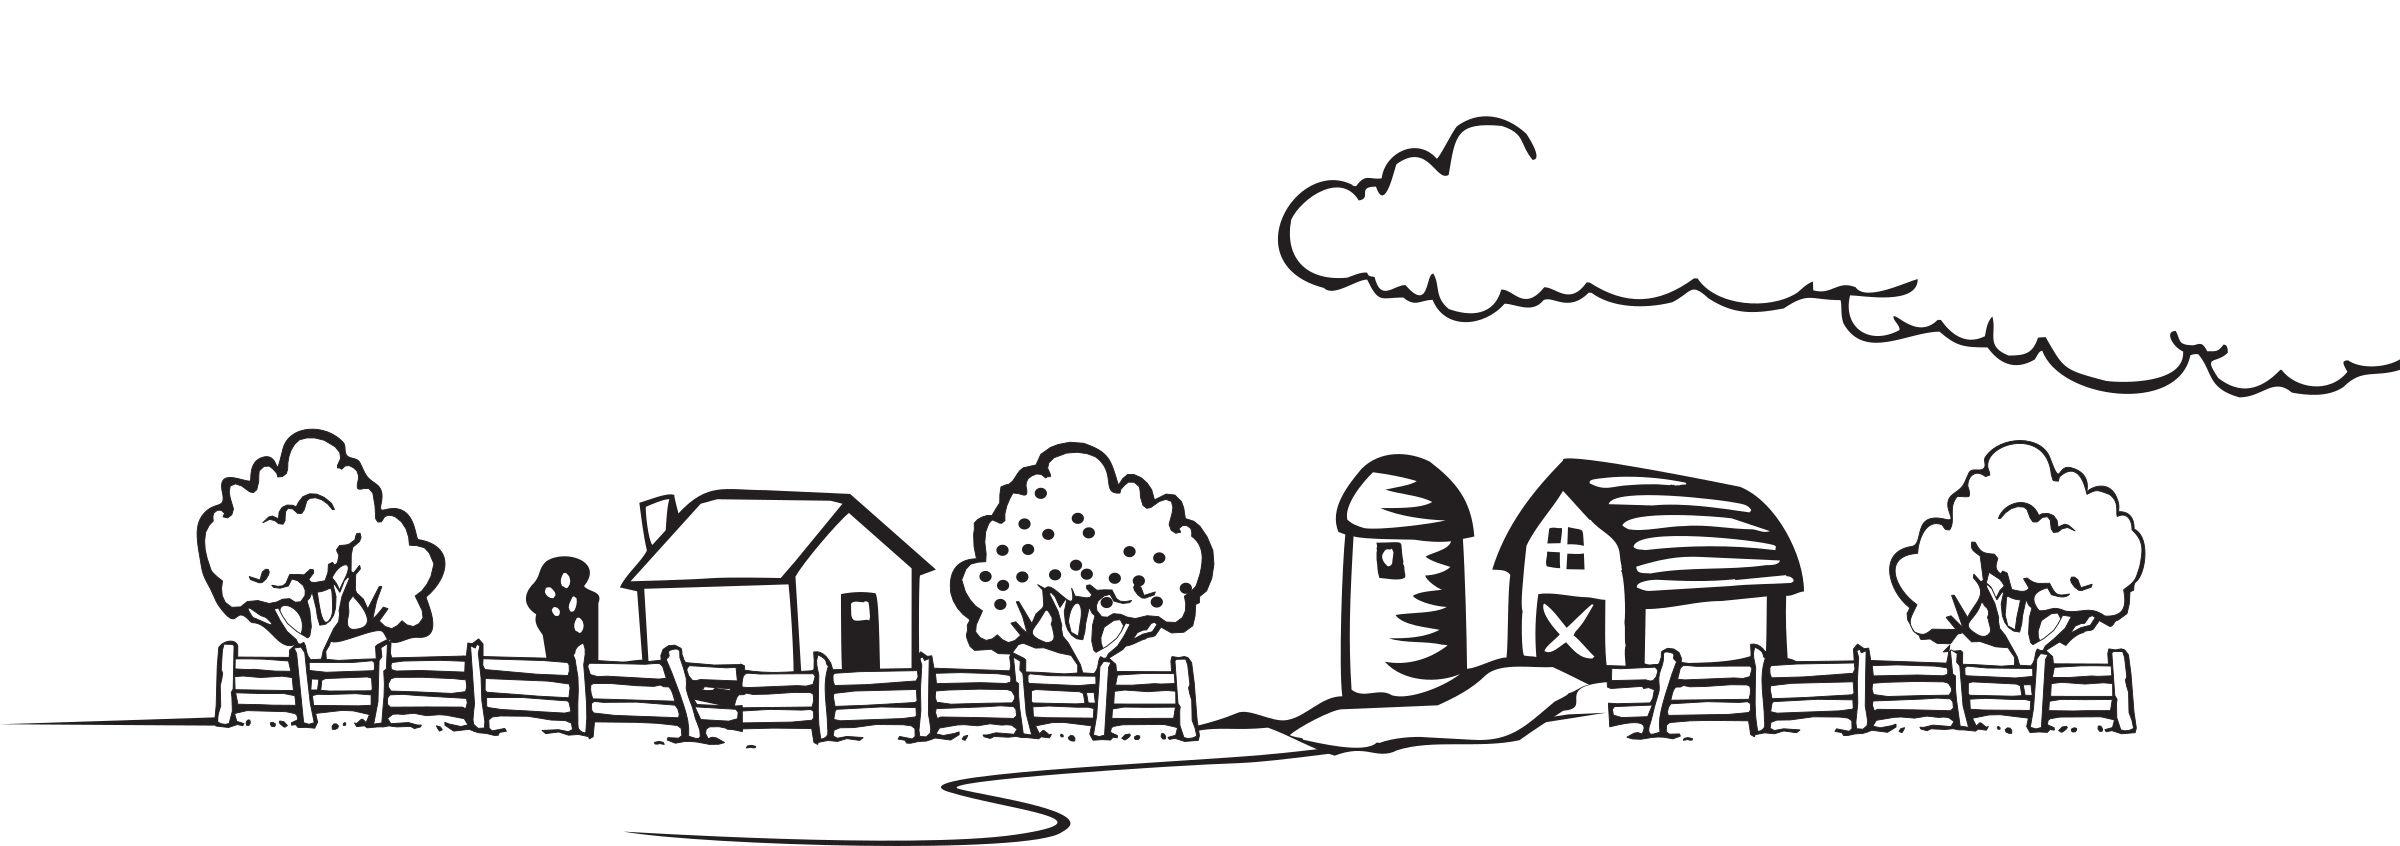 Farm House Cblack And White Clipart 20 Free Cliparts